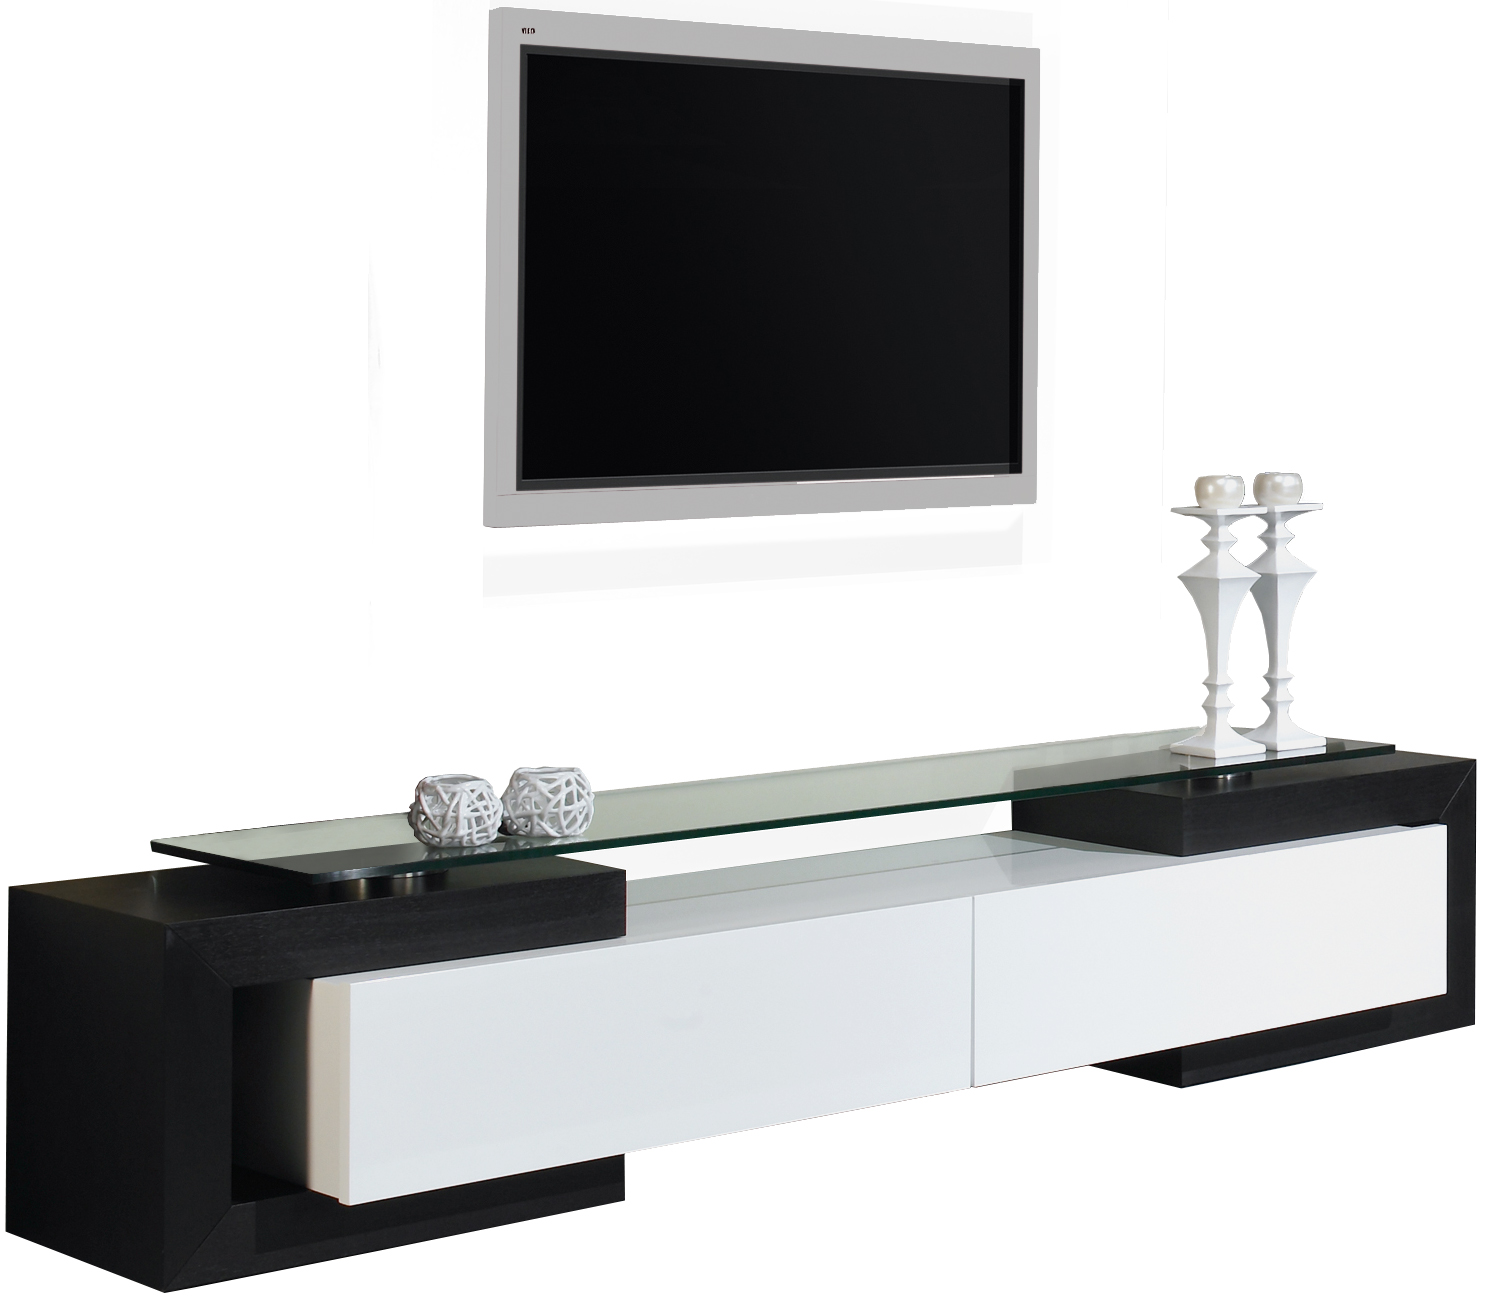 banc tv blanc laque led solutions pour la d coration. Black Bedroom Furniture Sets. Home Design Ideas